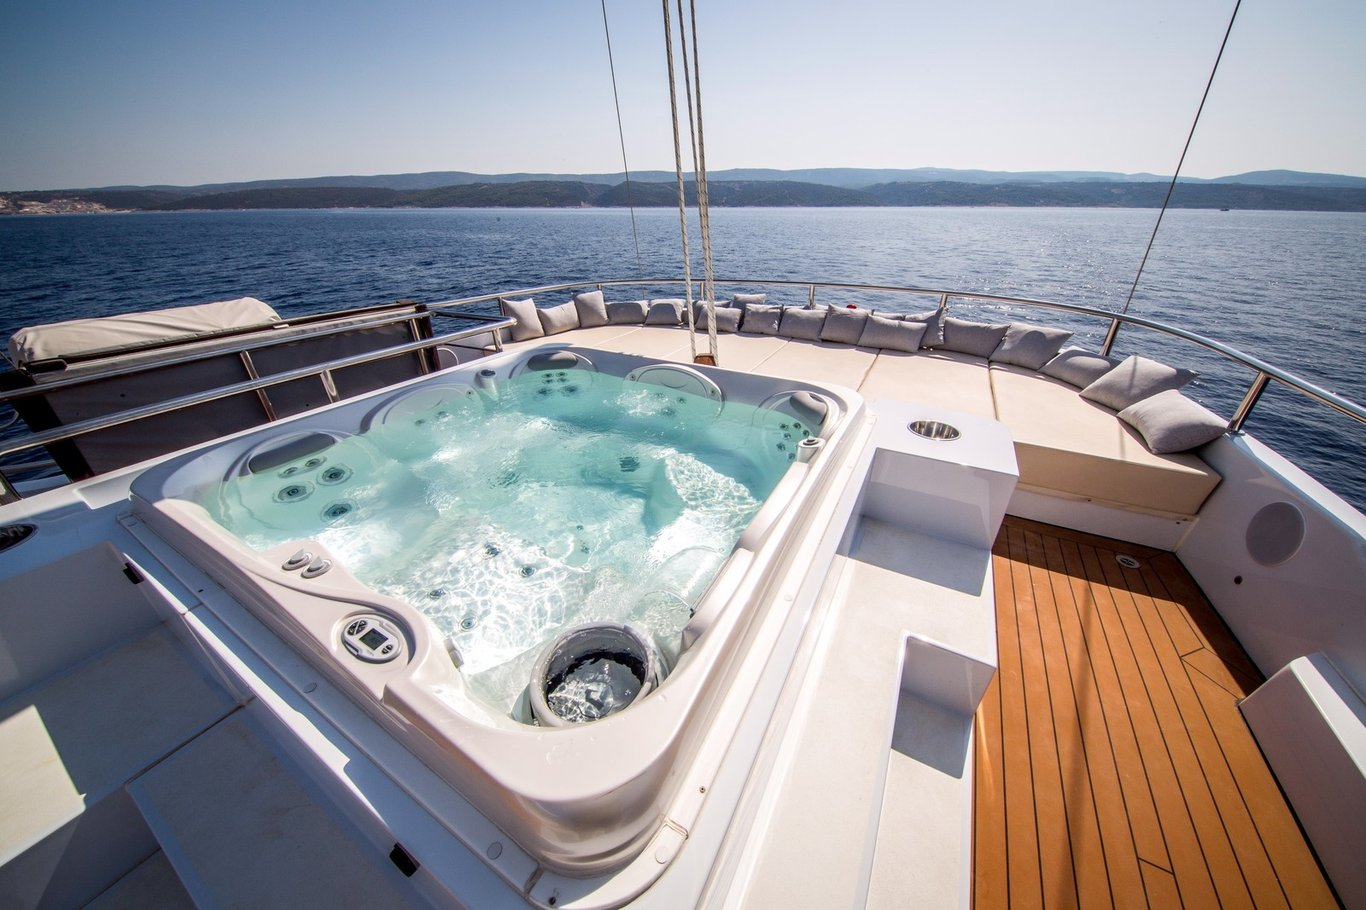 Built by the owners of Navilux, who continue to showcase their endless aptitude for elegance, charm, comfort, and class, Aiaxaia accommodates 12 guests